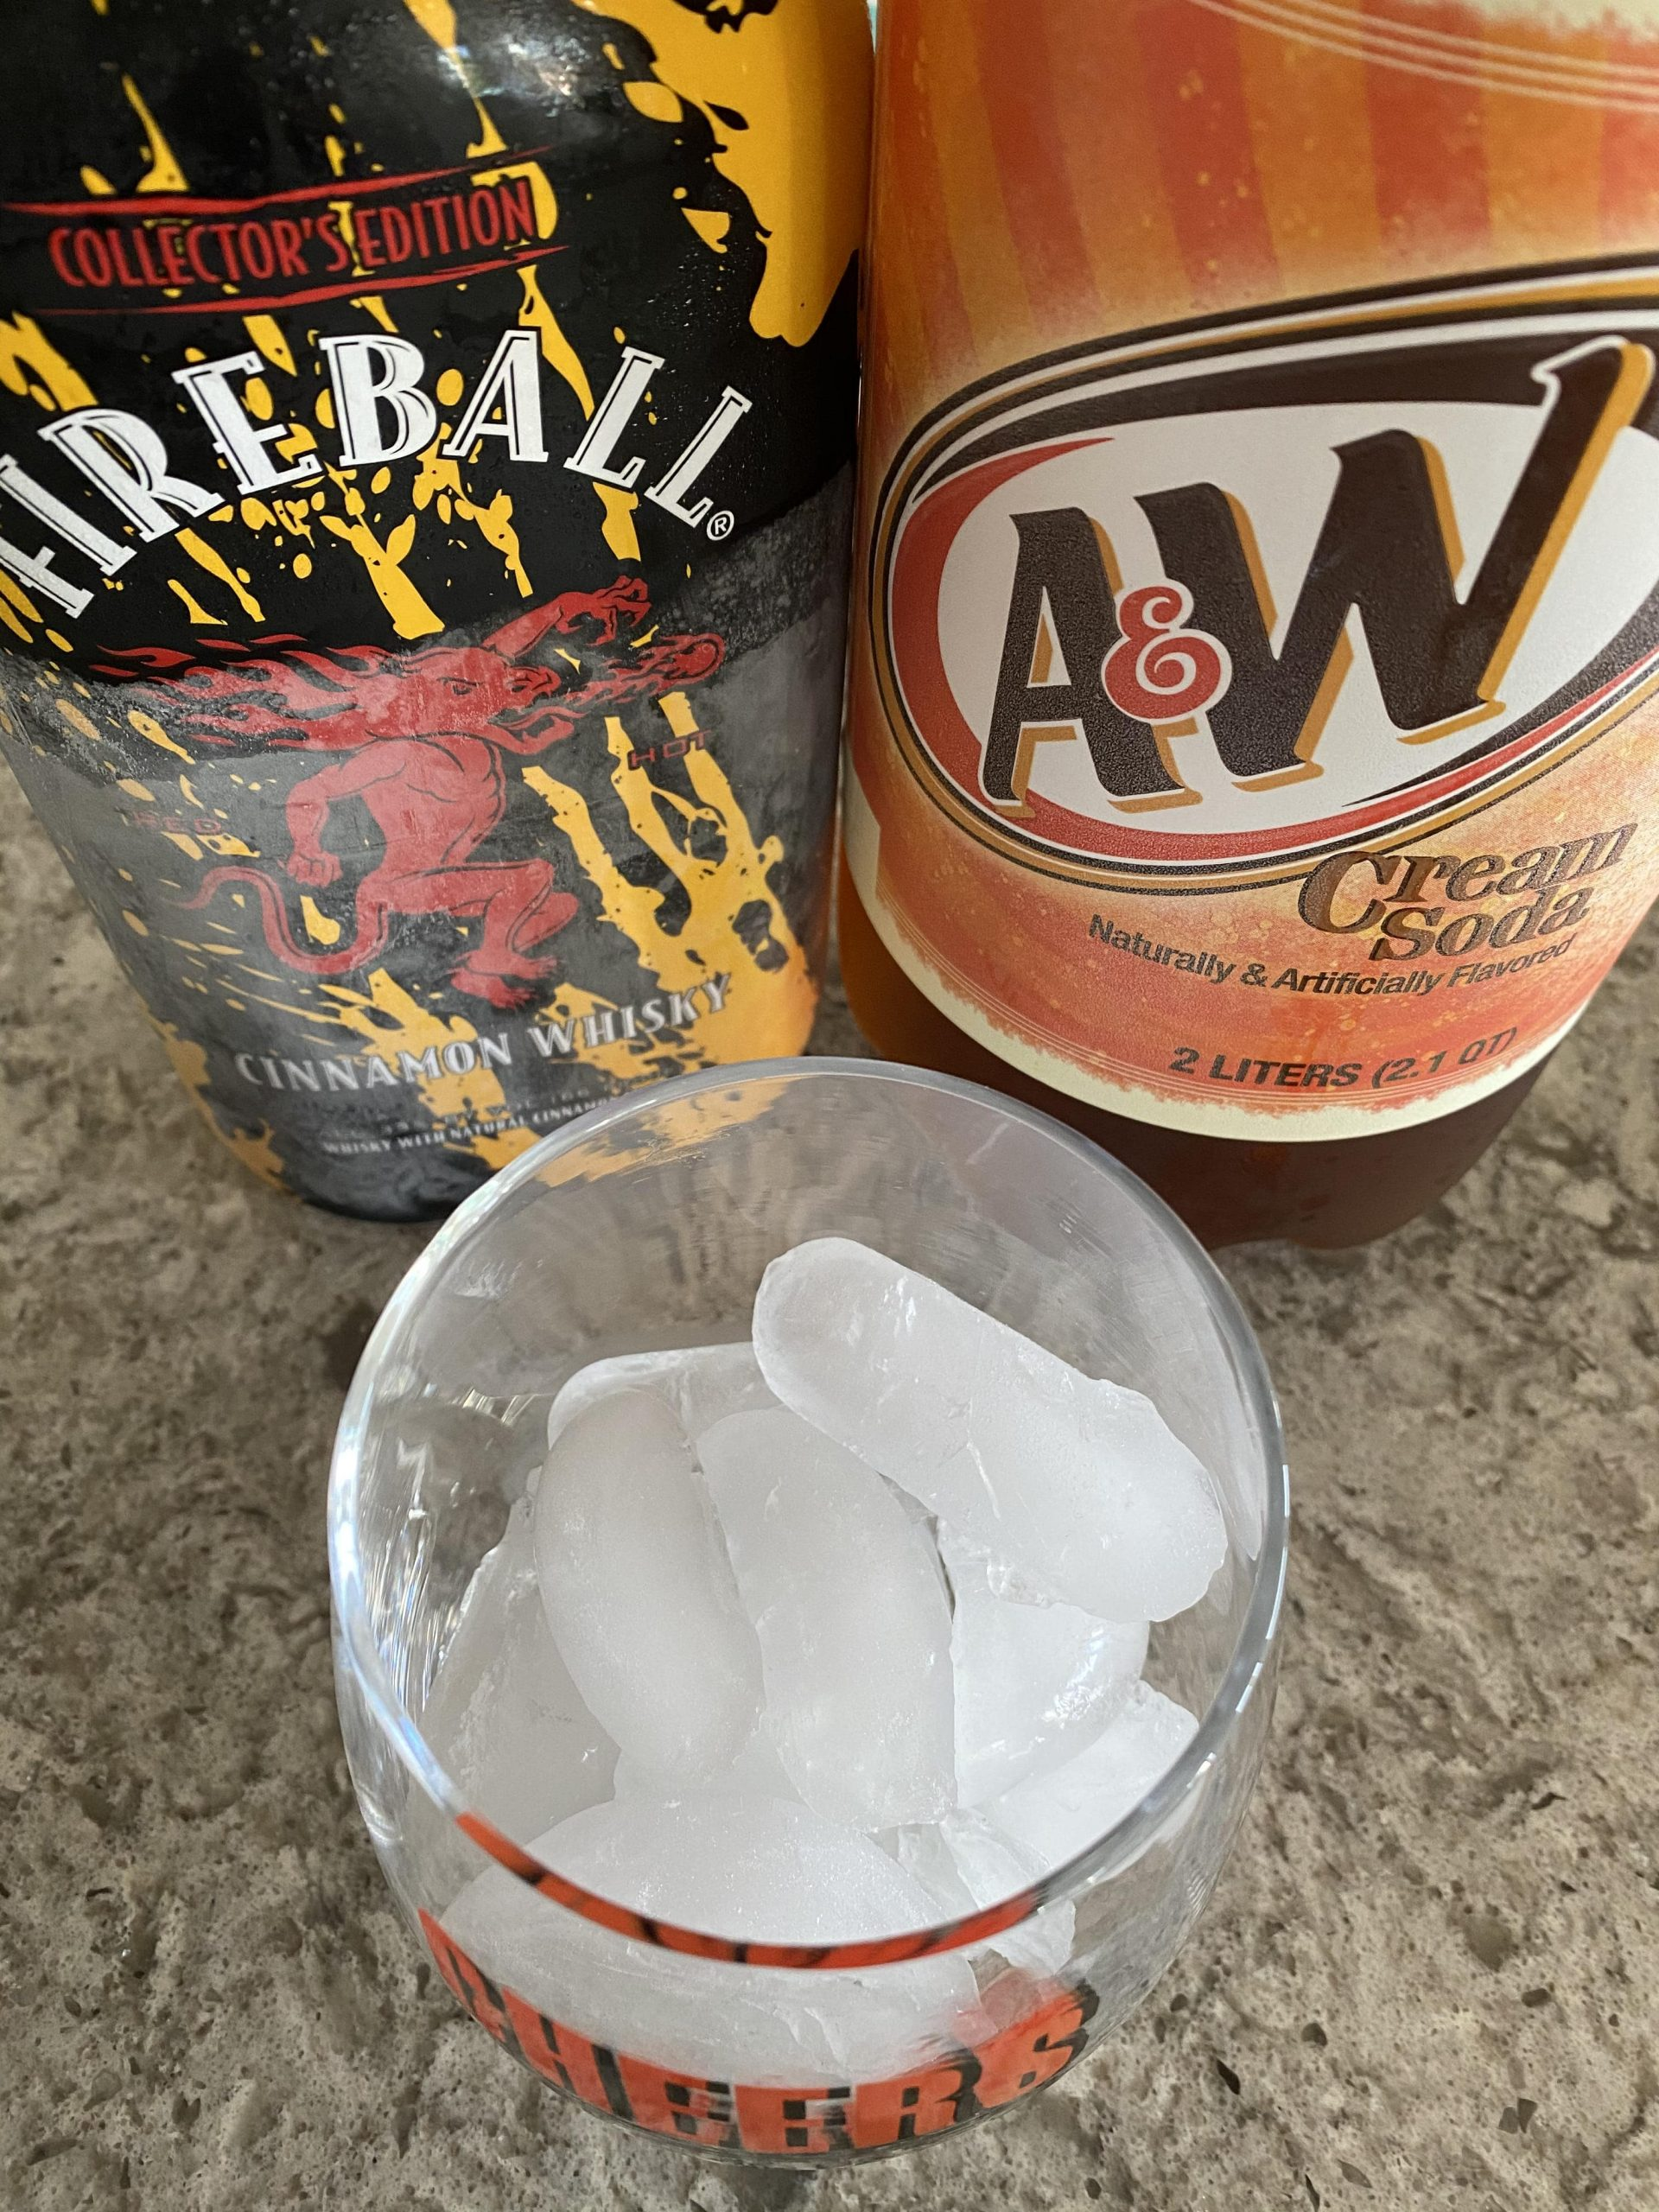 Fireball whiskey, cream soda and glass with ice